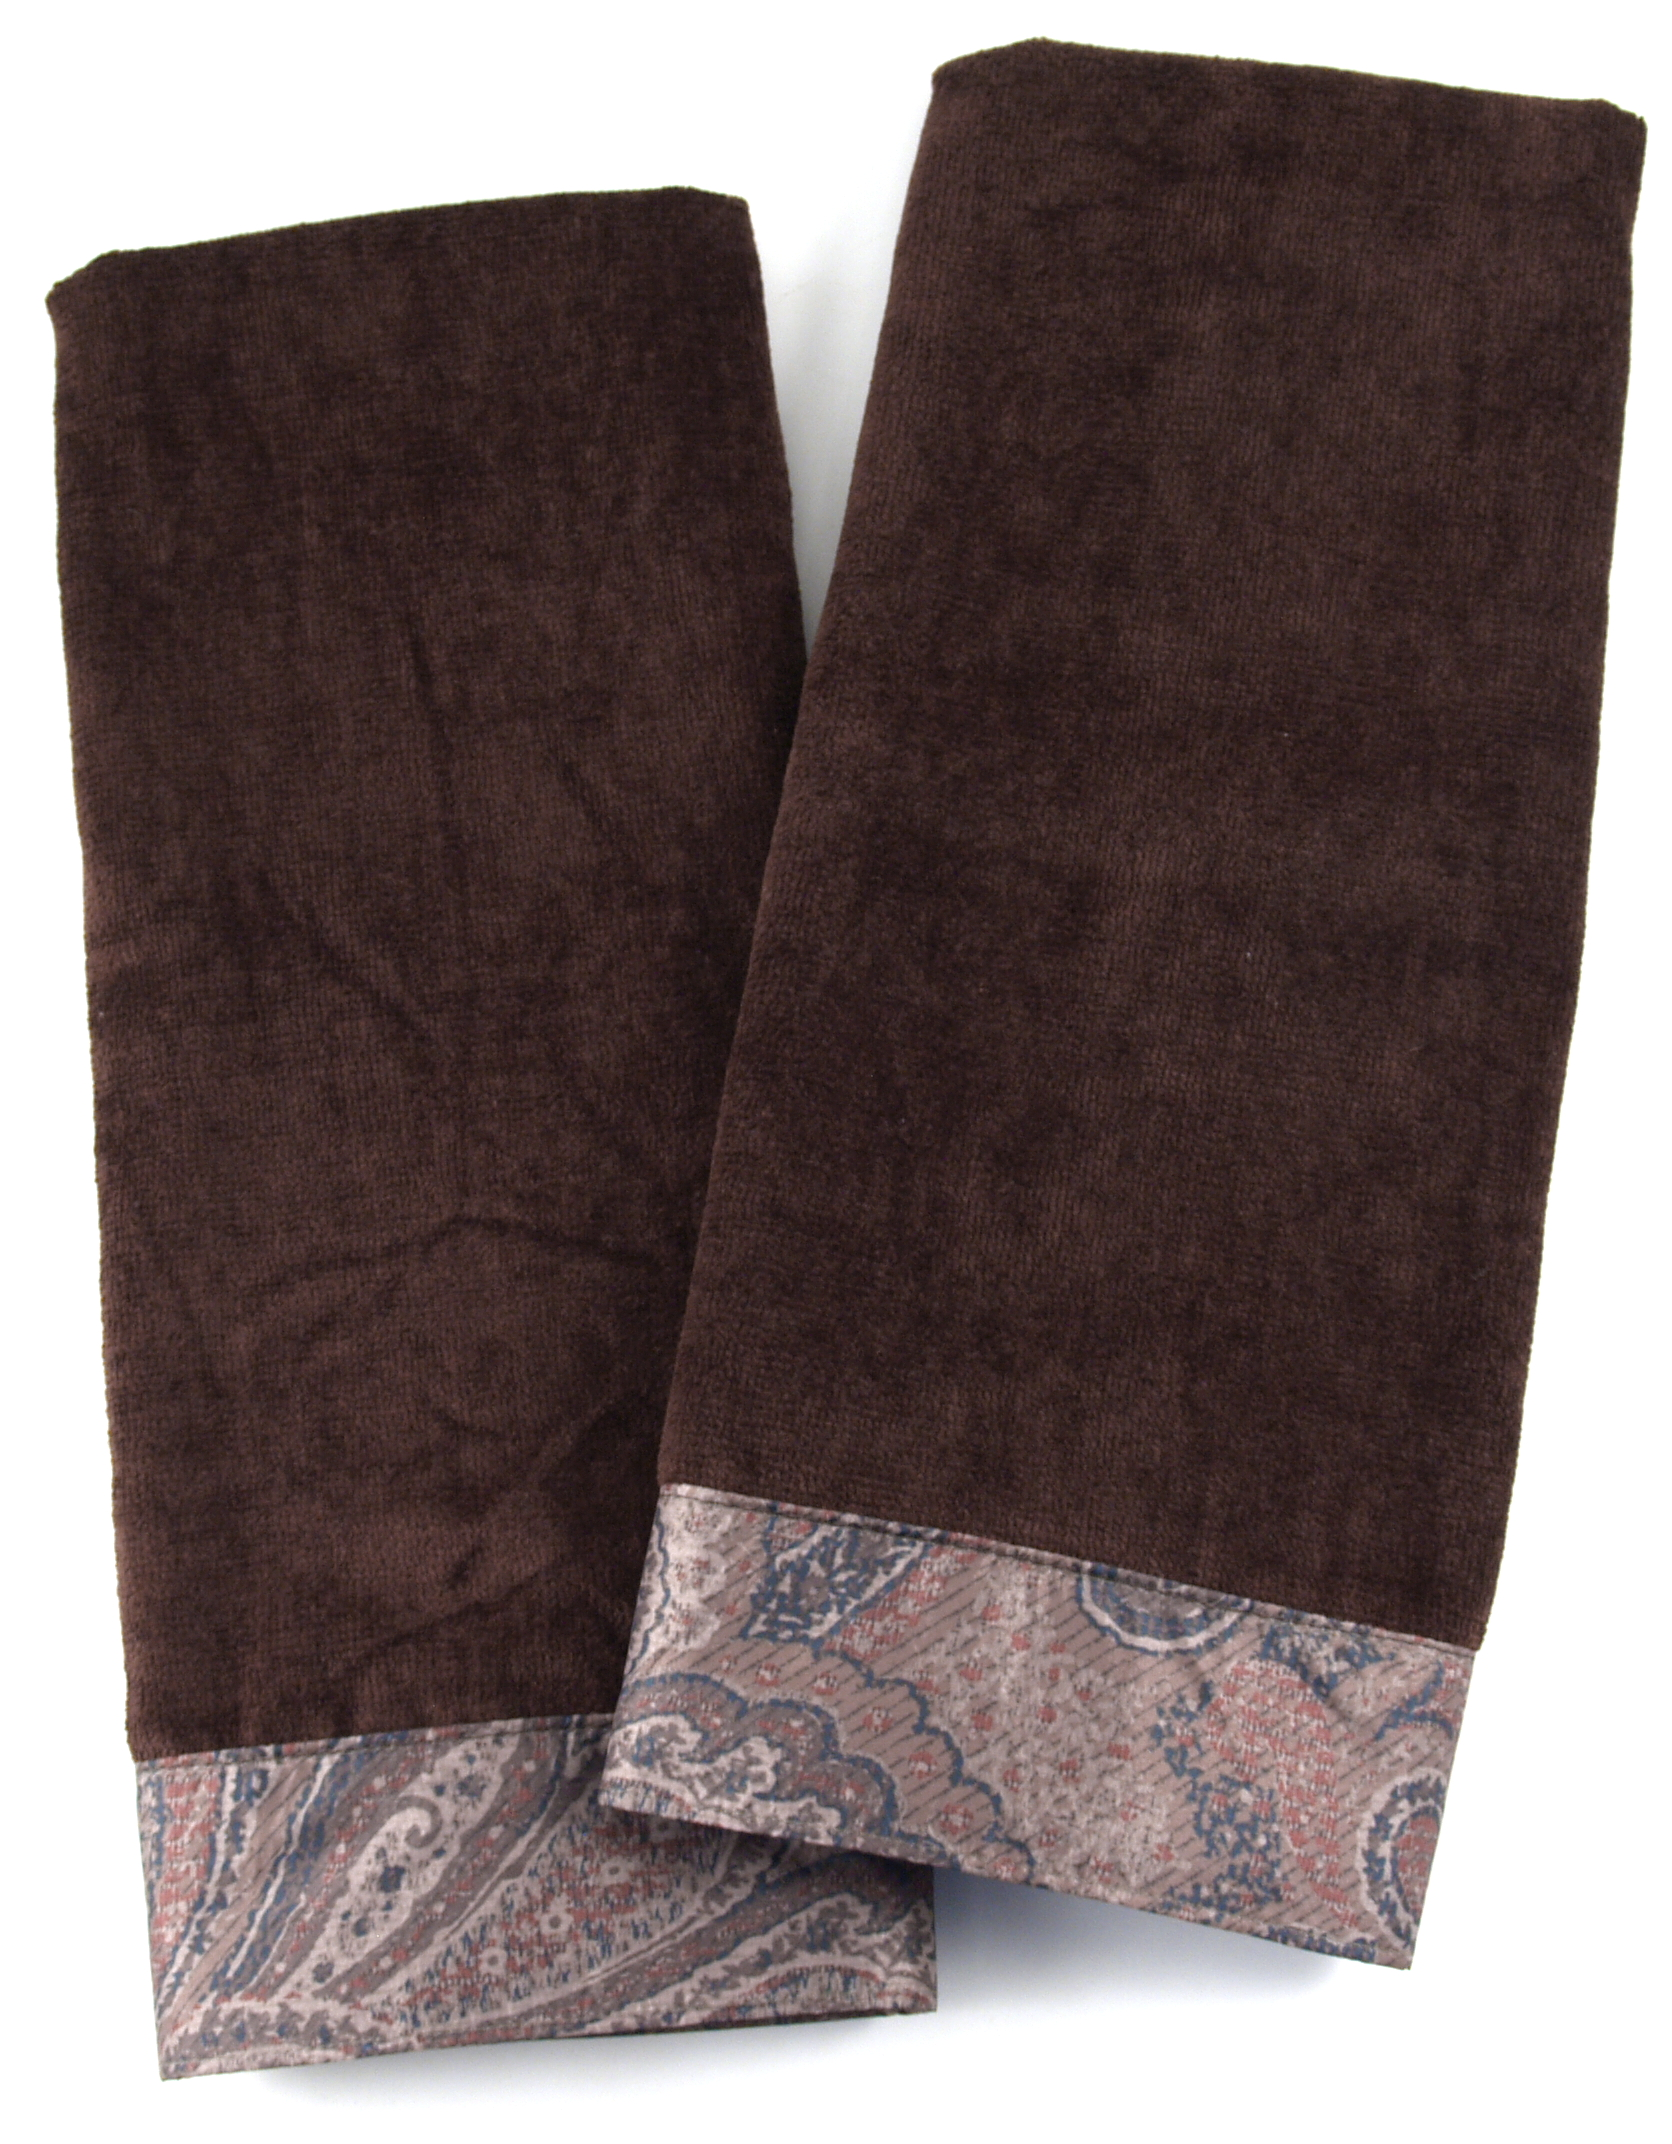 Chocolate Brown Cotton Hand Towel With Paisley Trim, Set Of 2